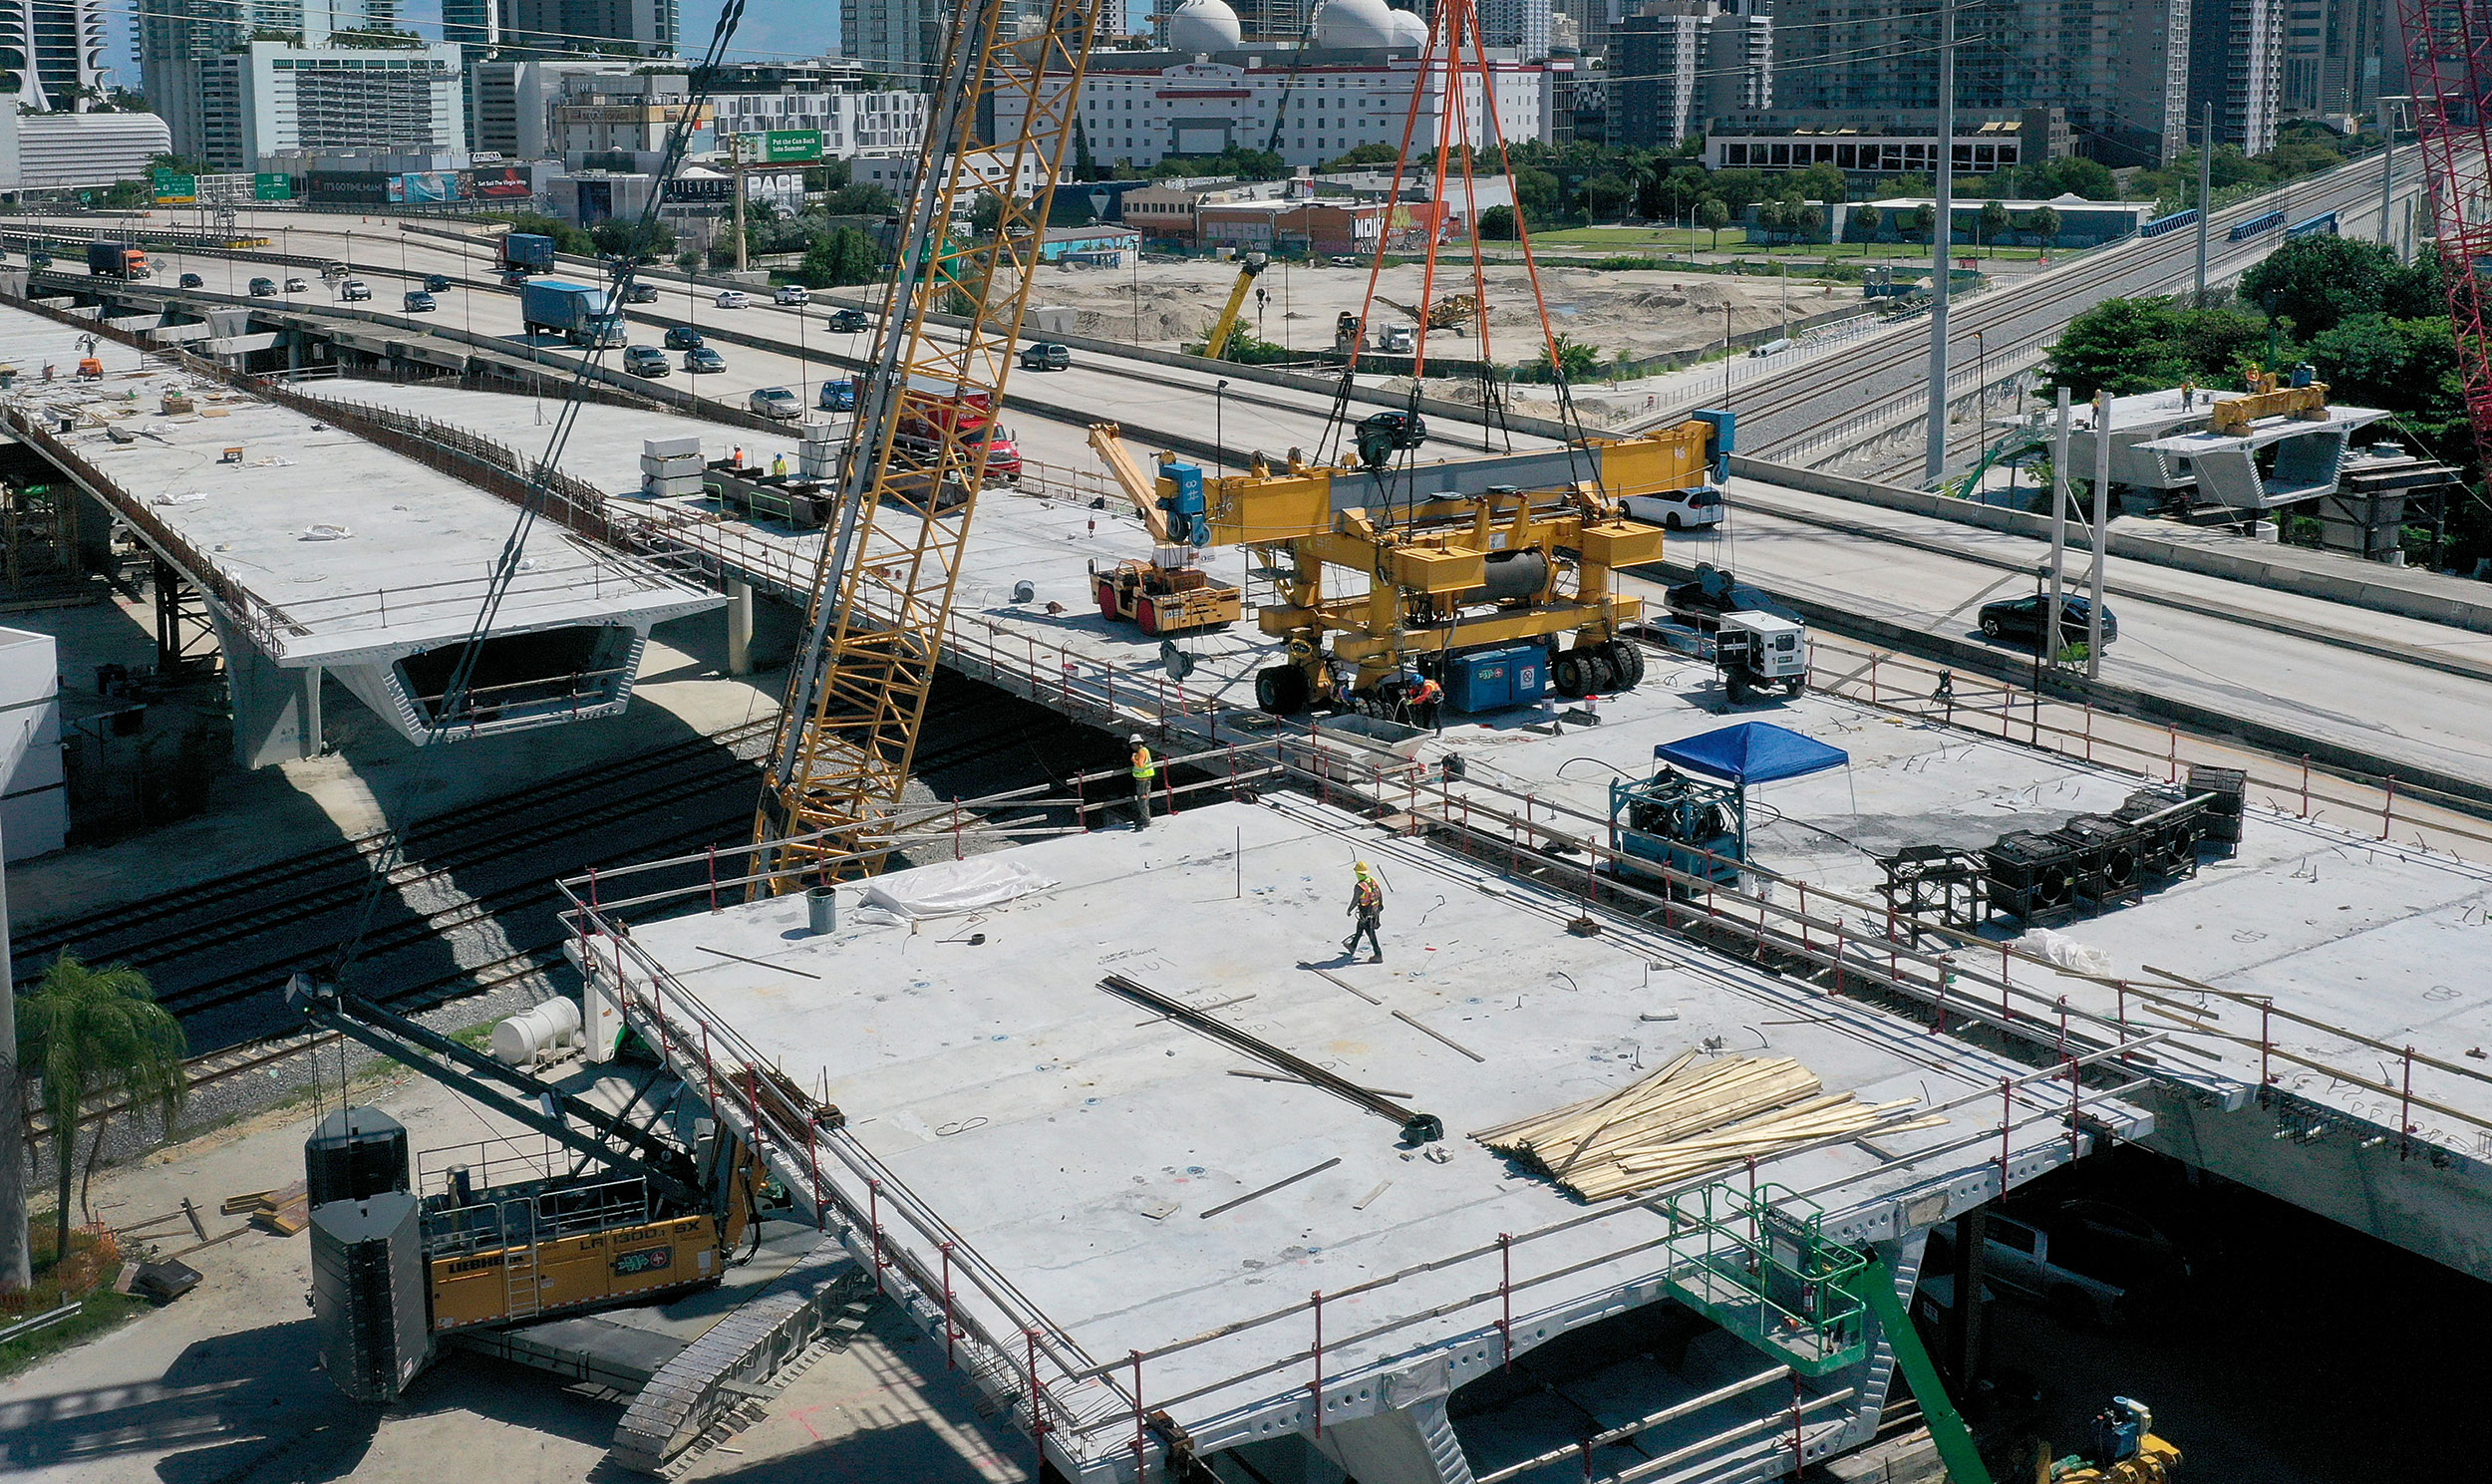 Construction workers build a bridge in Miami, Florida, on September 27.